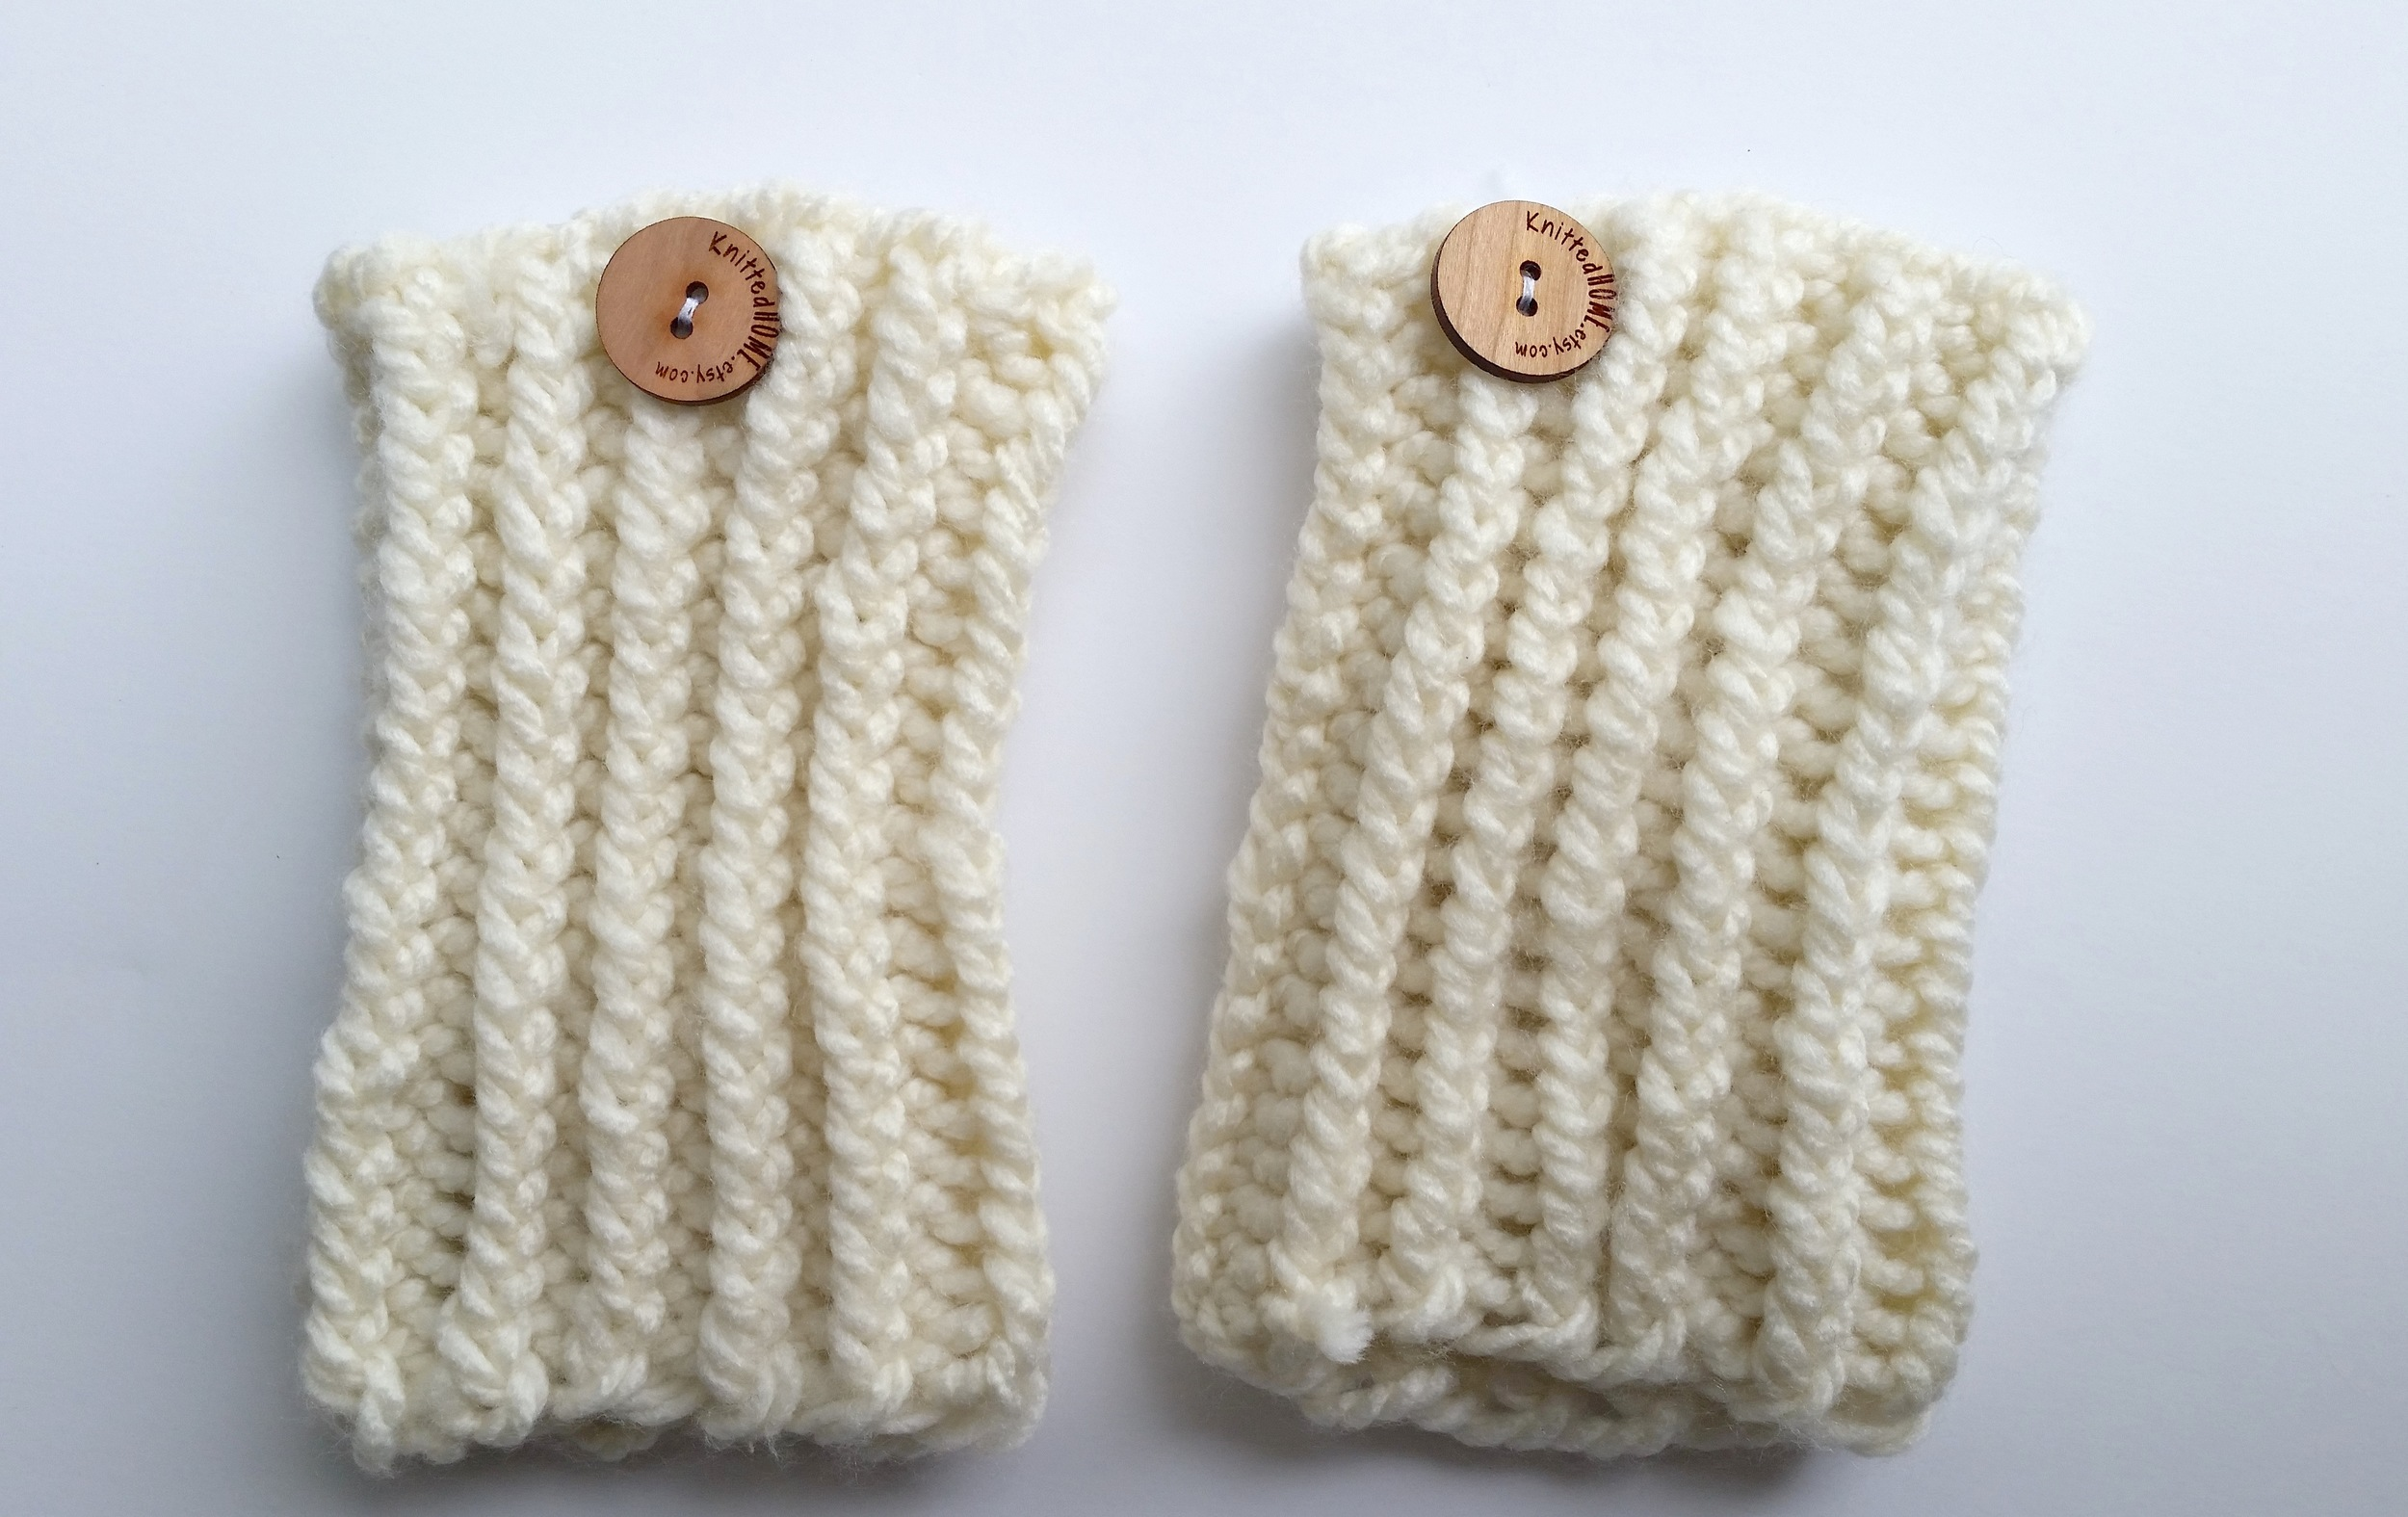 Ribbed Knit Boot Cuffs theknittedhome.com